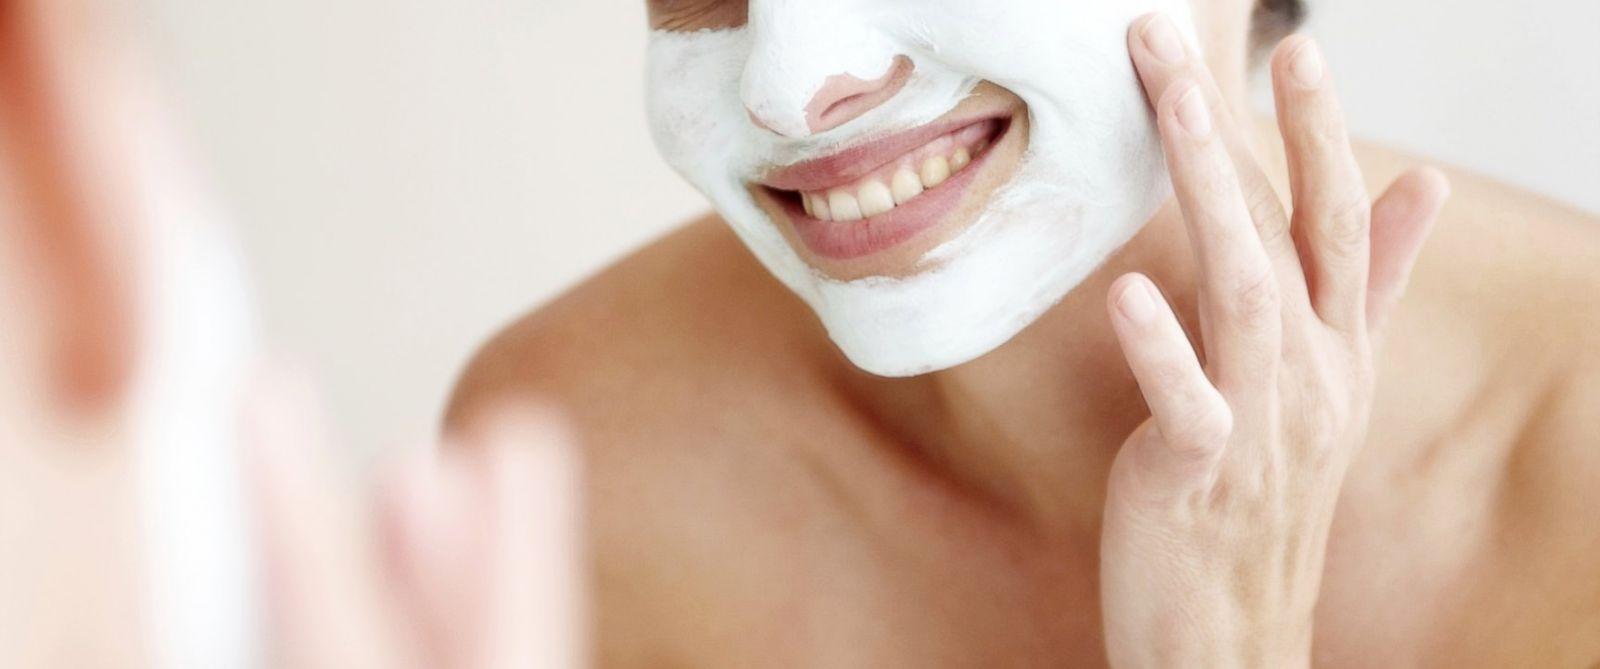 PHOTO: Probiotics are being incorporated in topical skin care treatments.